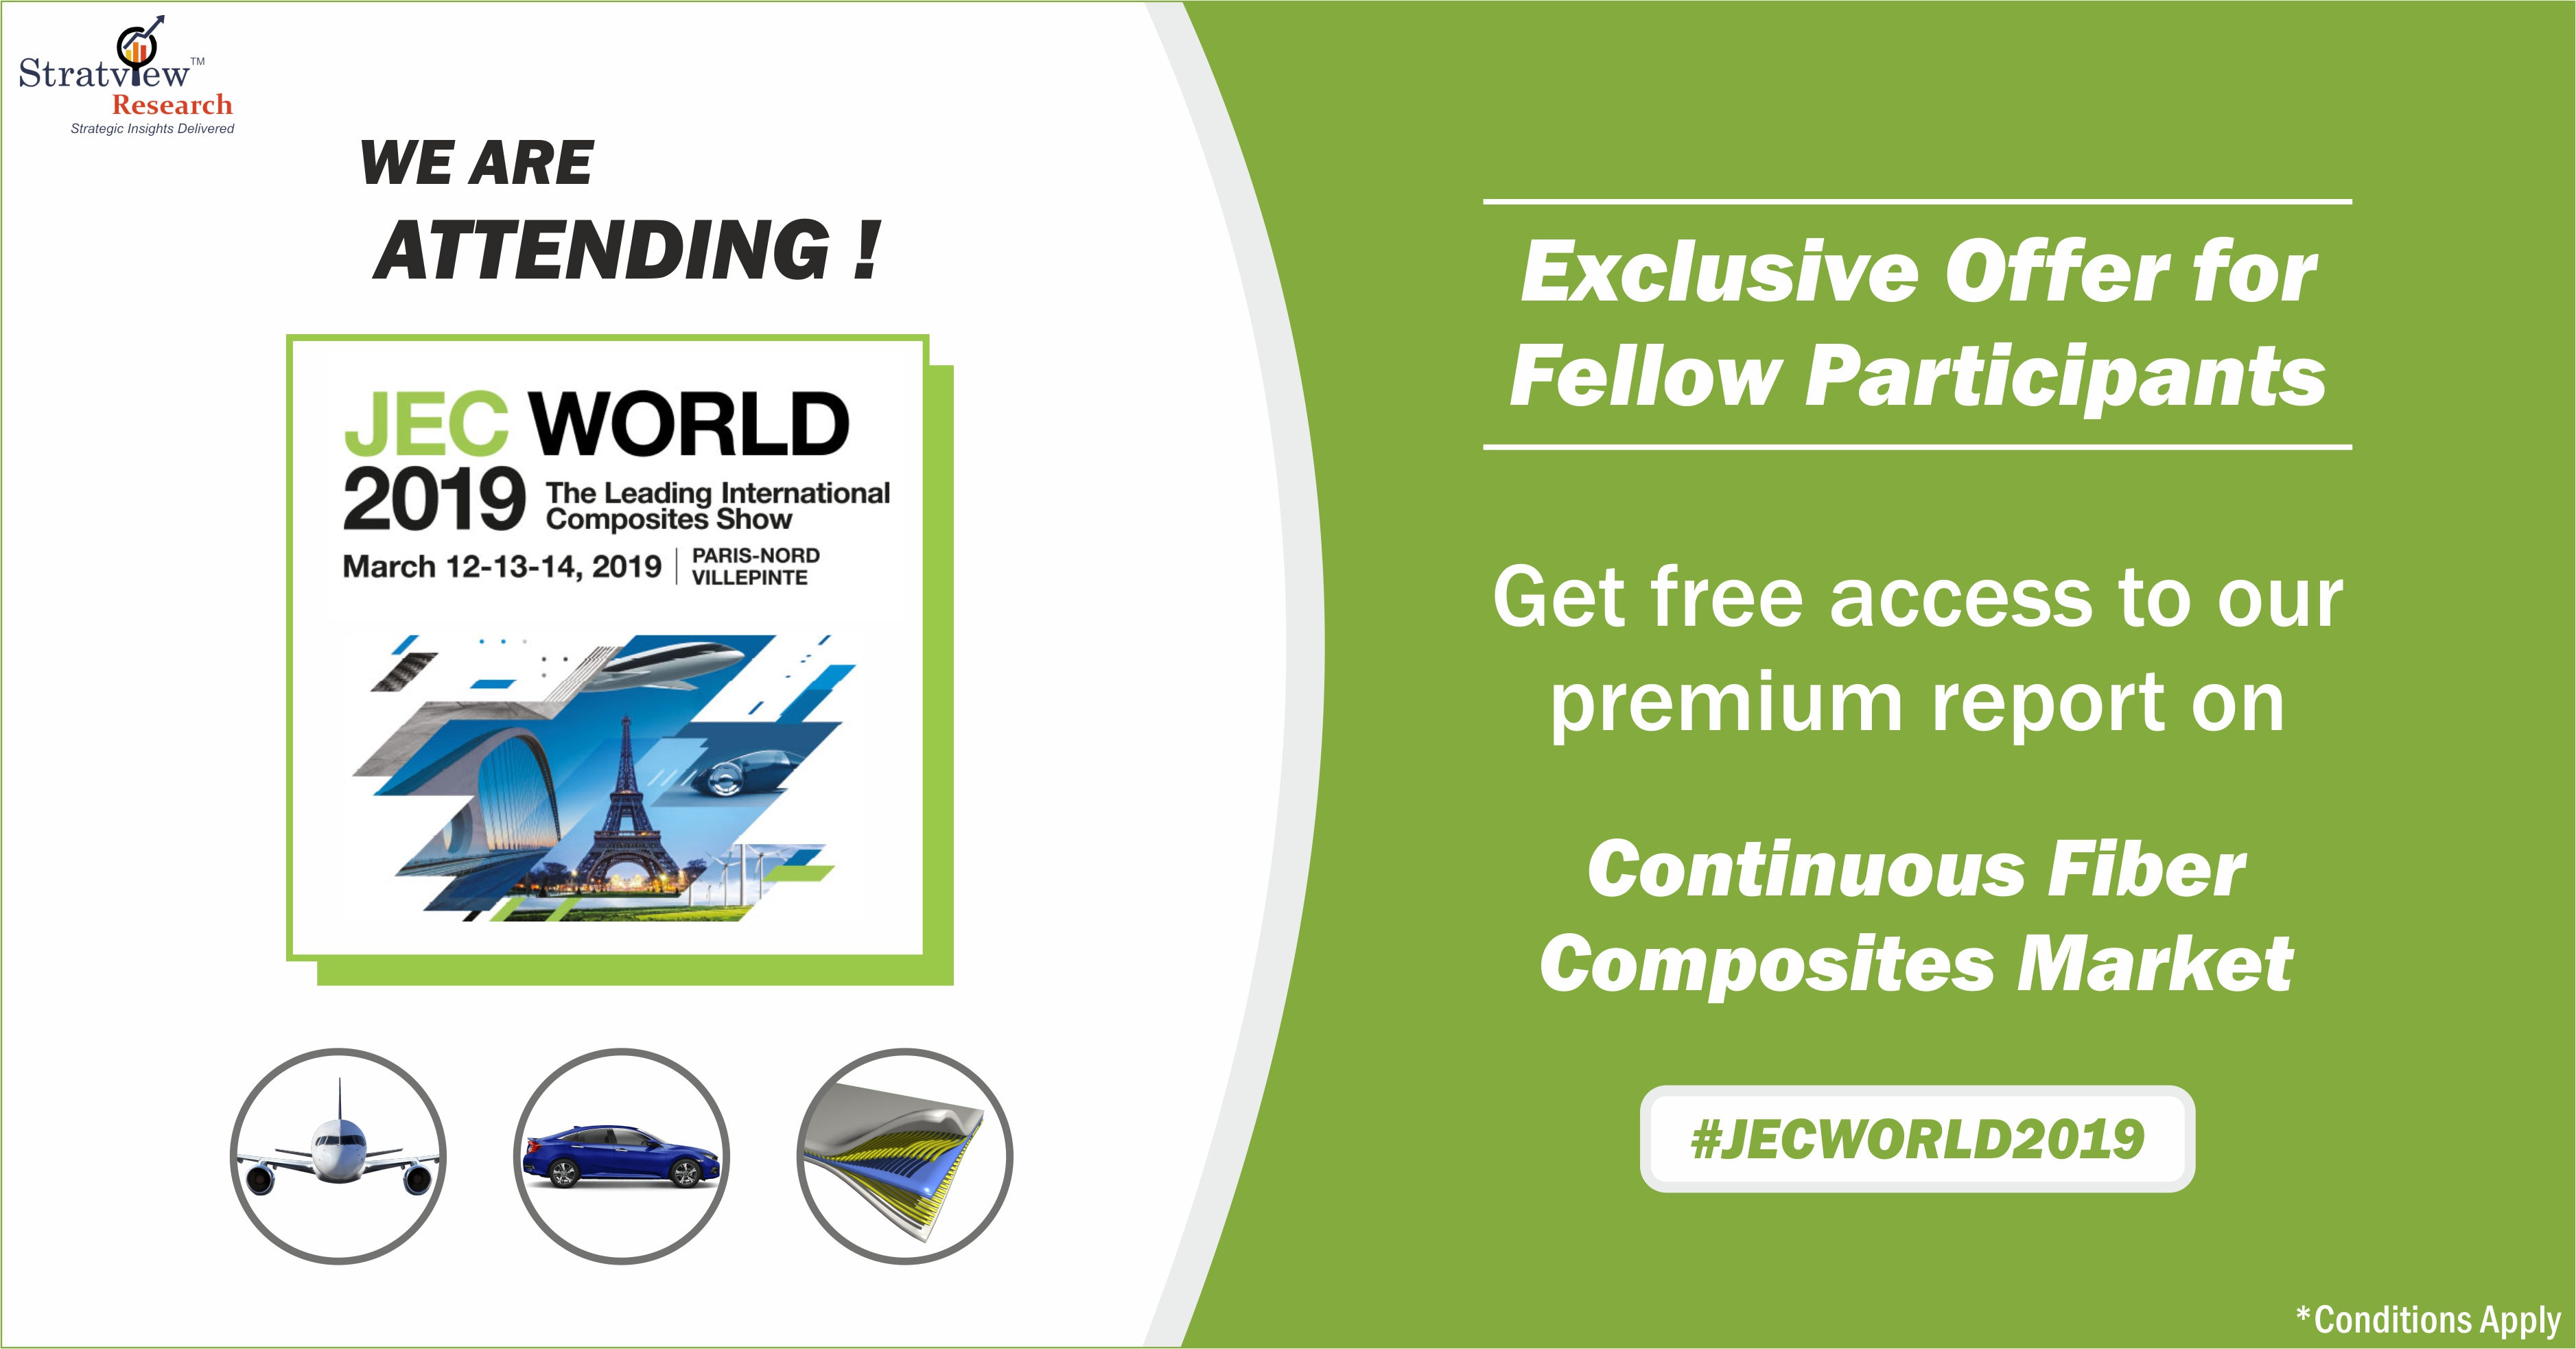 Limited Offer for JEC World 2019 Participants: Grab a FREE copy of our Premium Report on Continuous Fiber Composites Market